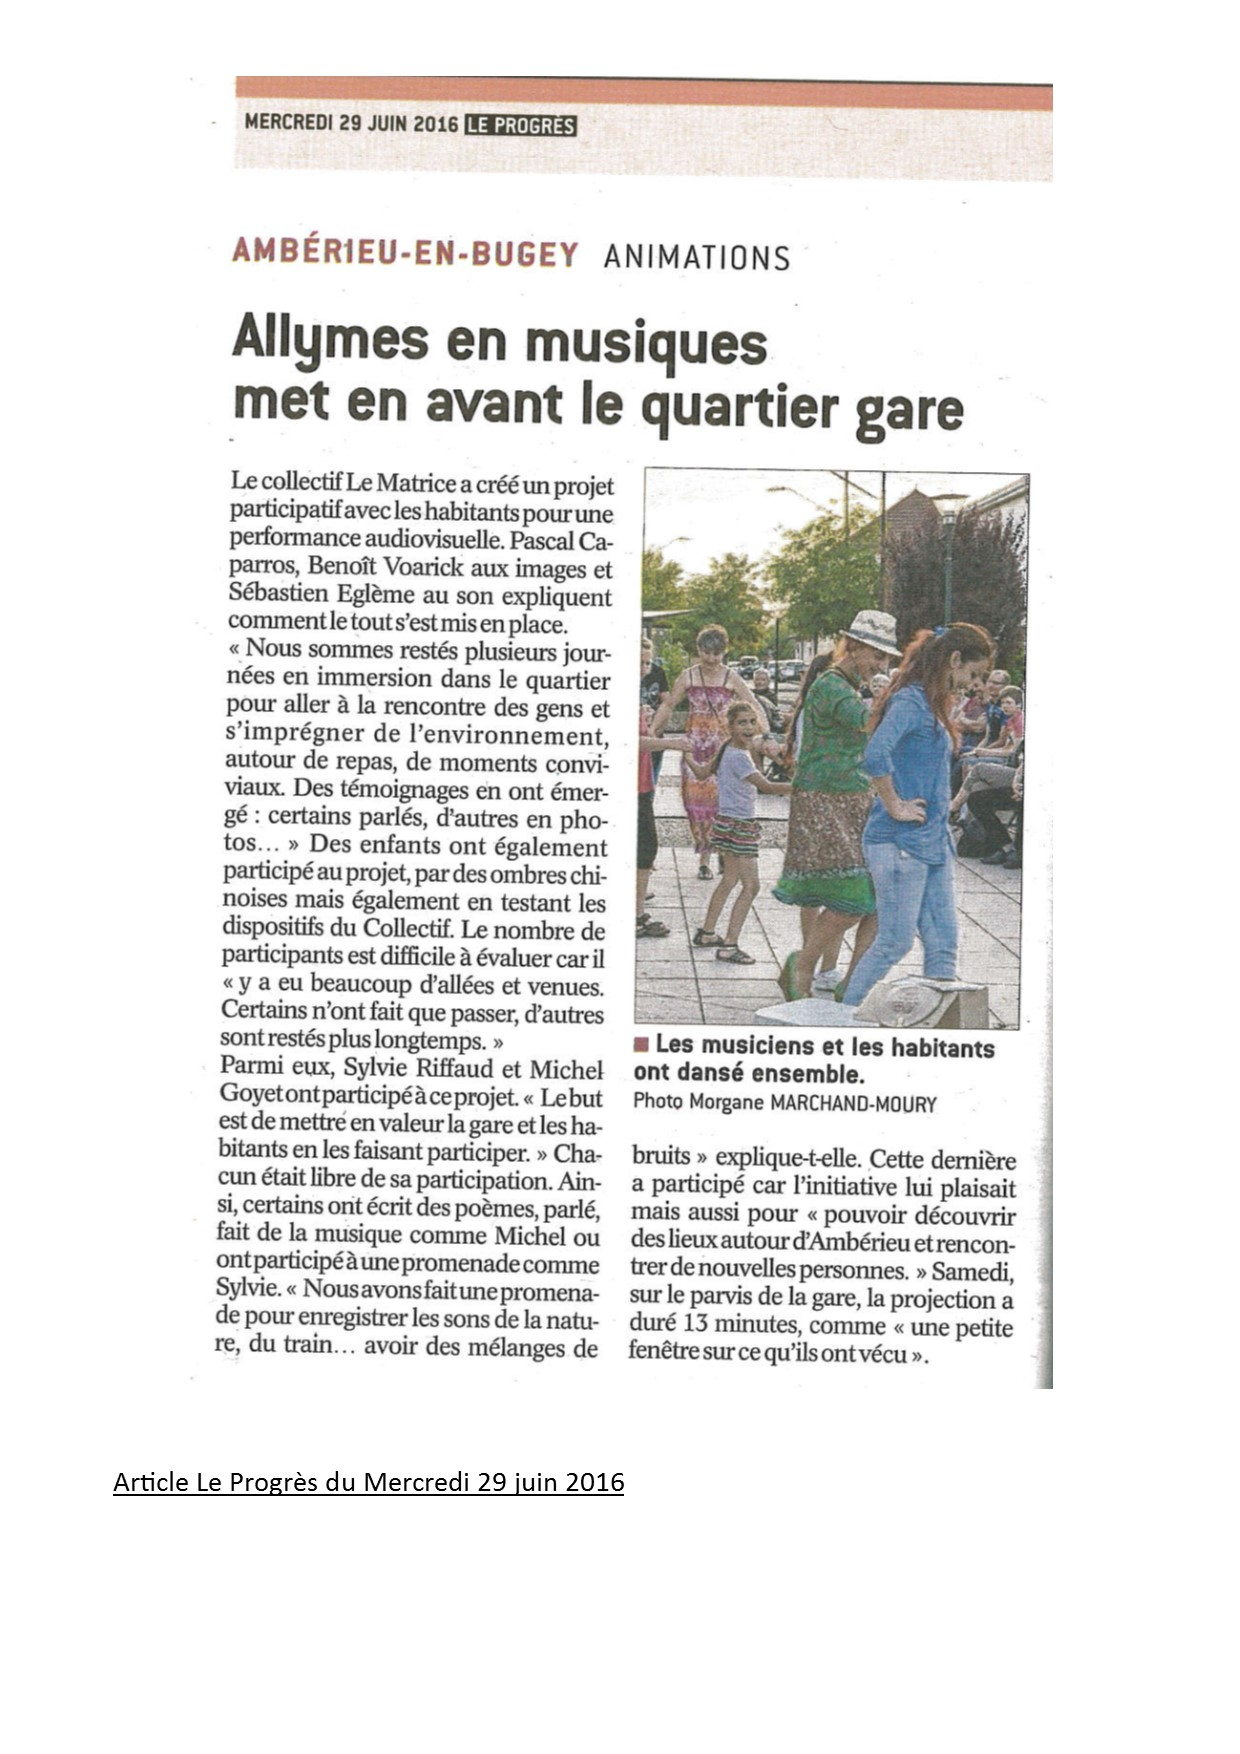 Allymes article du 29 juin